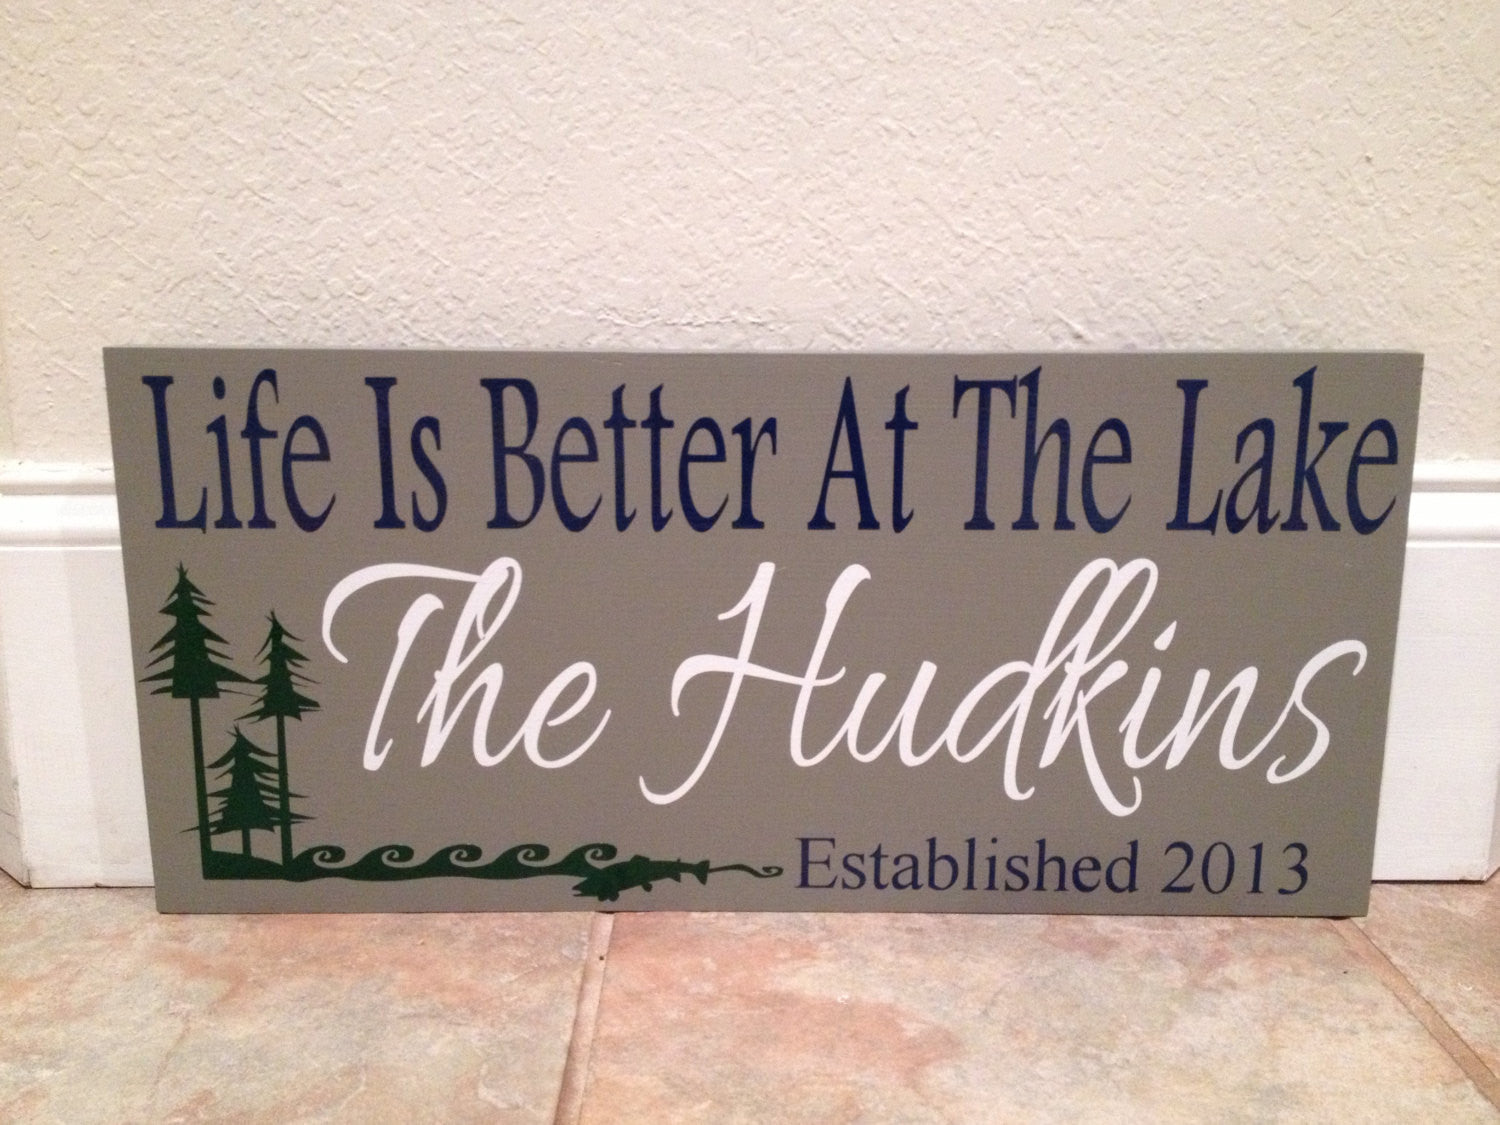 Lake house Established date sign